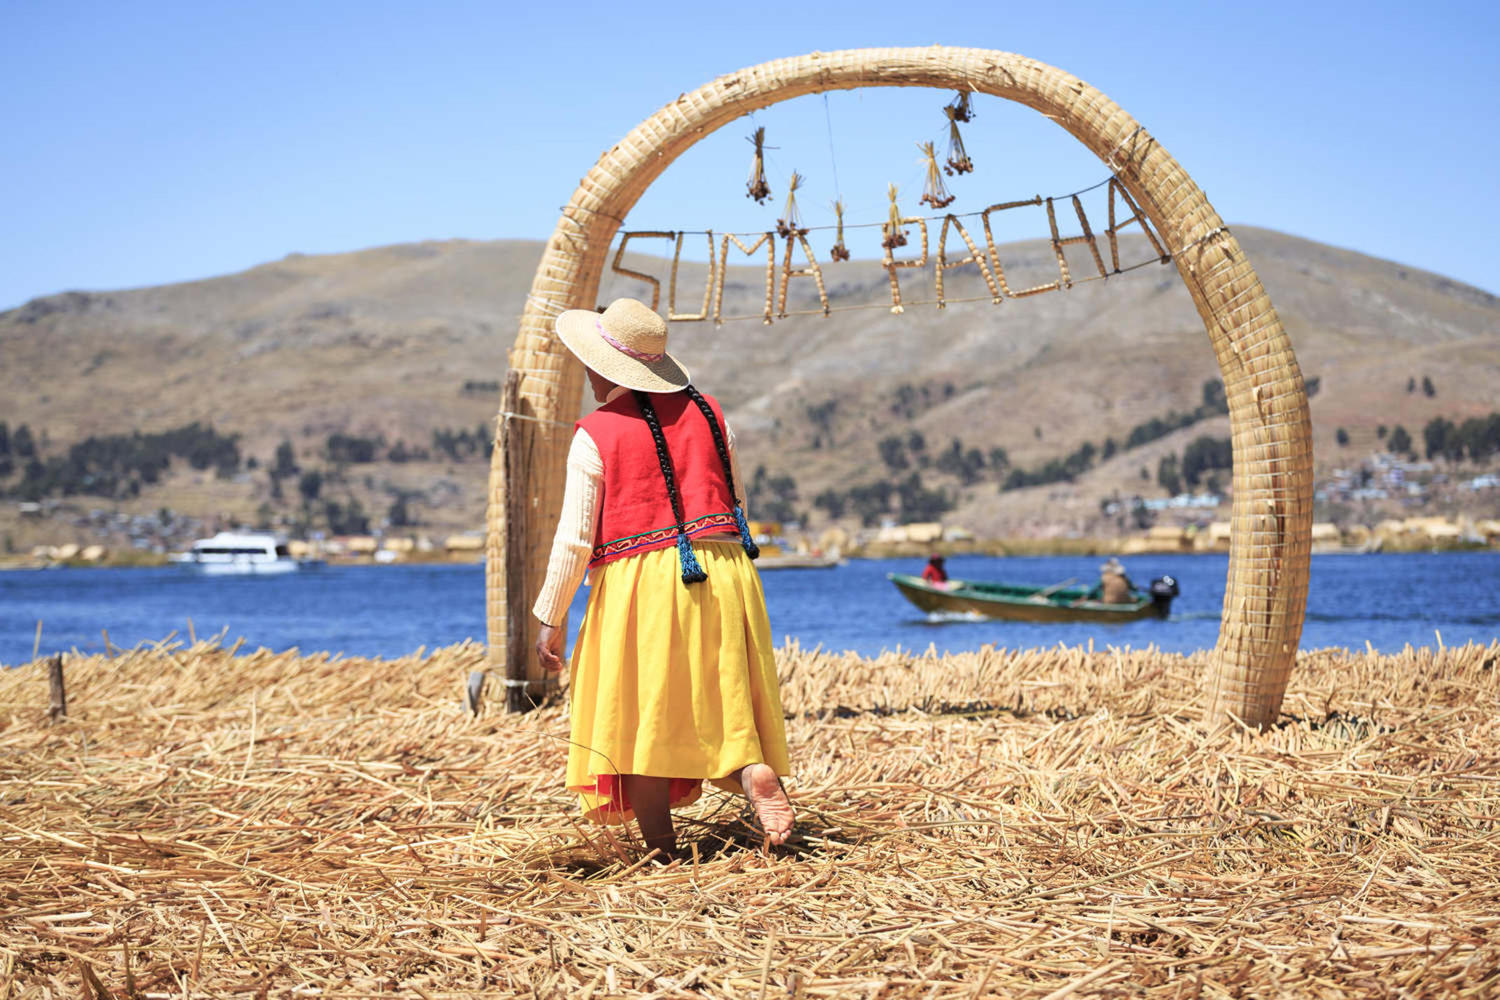 peru-lake-titicaca-unidentified-people-in-traditional-dresses-in-uros-island-puno